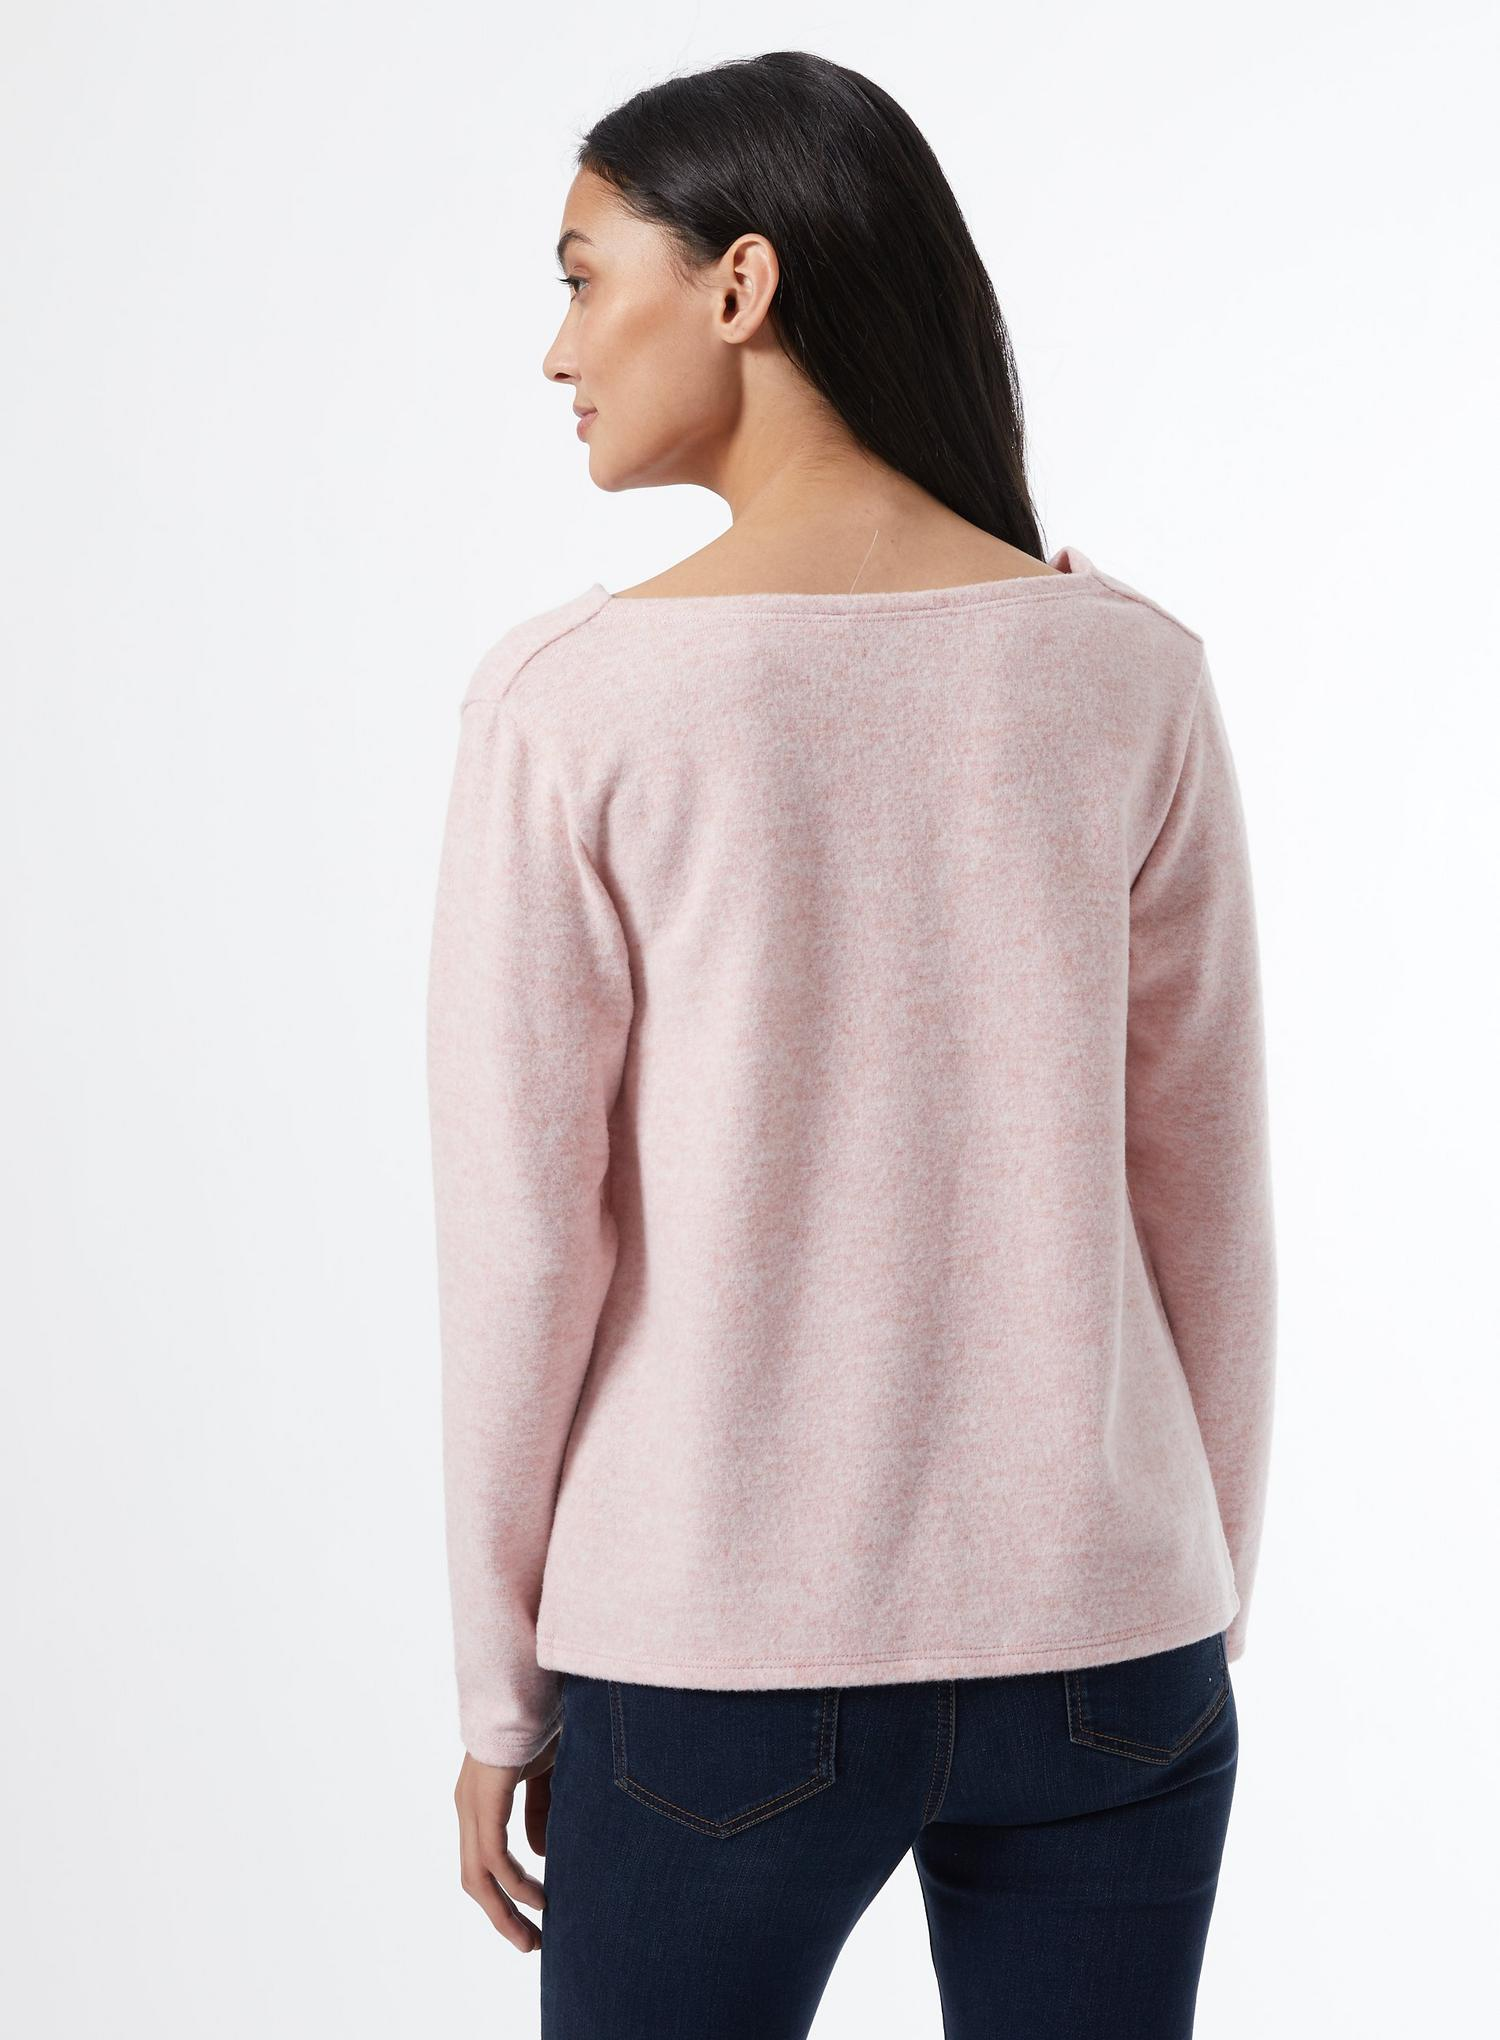 153 Petite Blush Cowl Neck Jumper image number 2